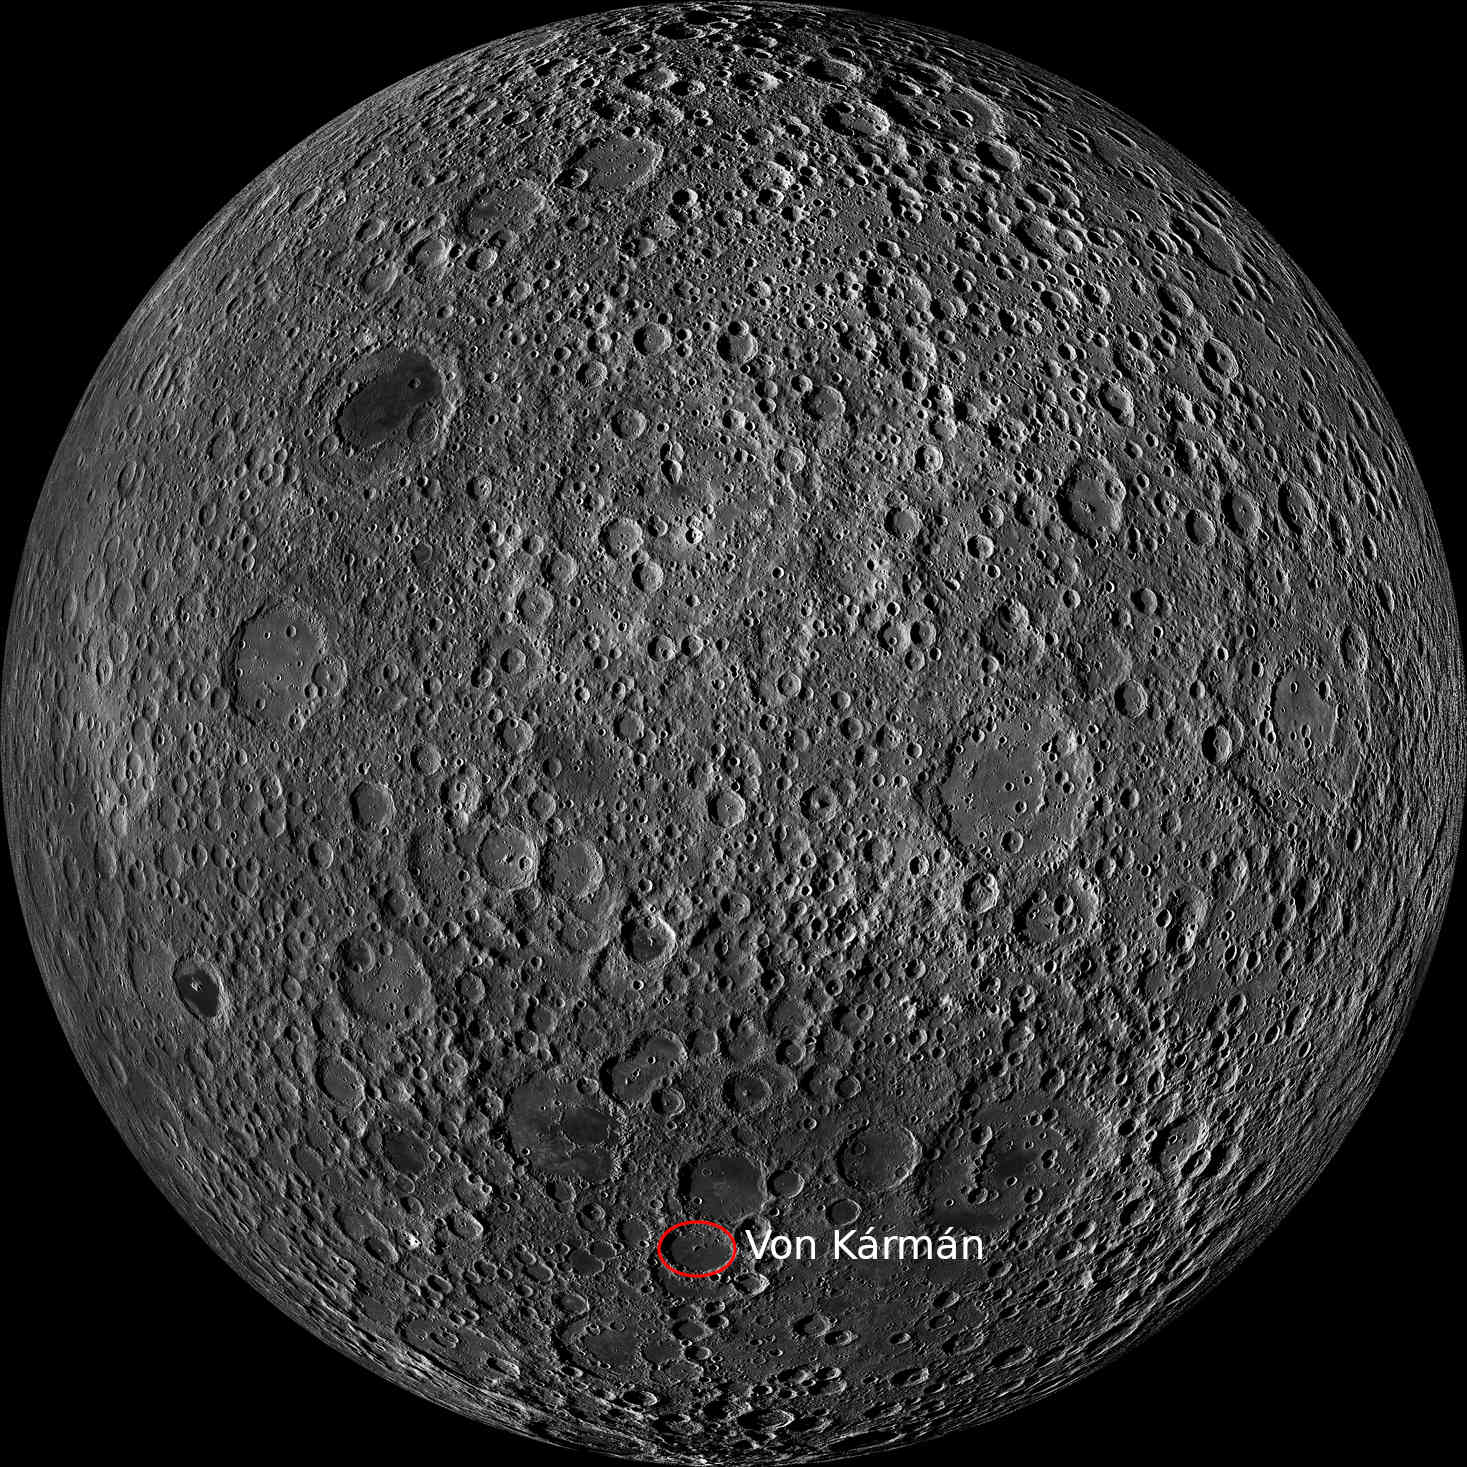 Far side of the Moon. The CNSA Chang'e 4 lander descended into Von Kármán crater in January 2019. Credit: NASA/GSFC/Arizona State University